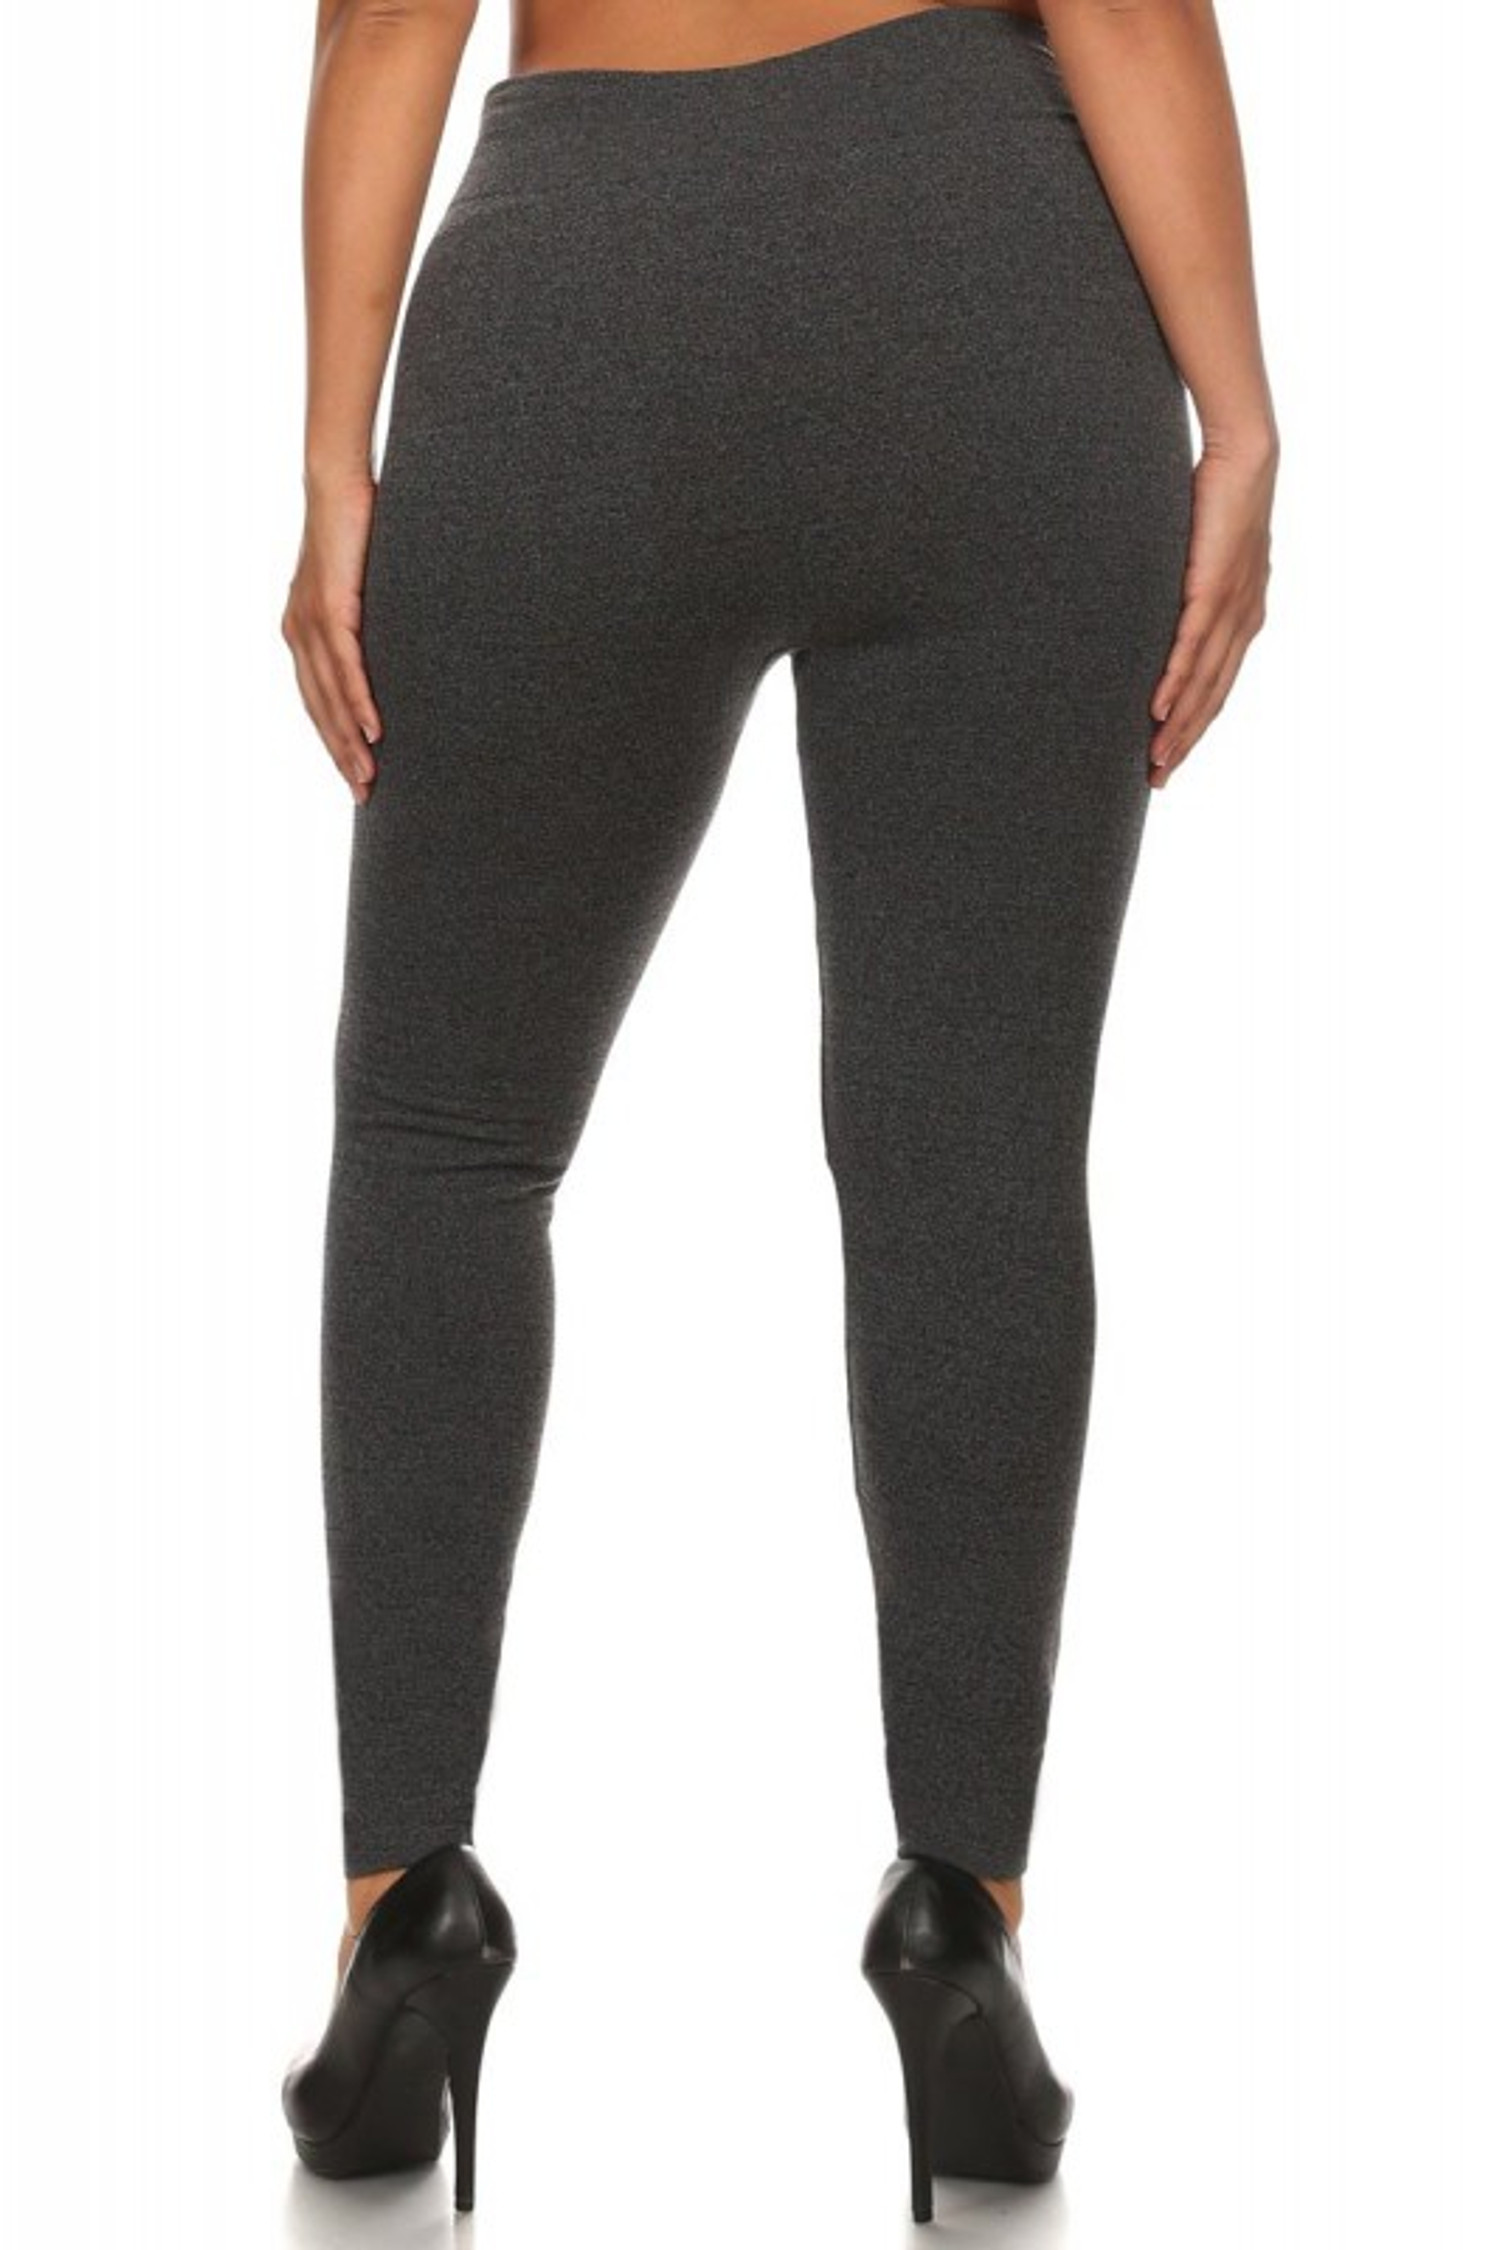 Back image of Premium Women's Fleece Lined Plus Size Leggings